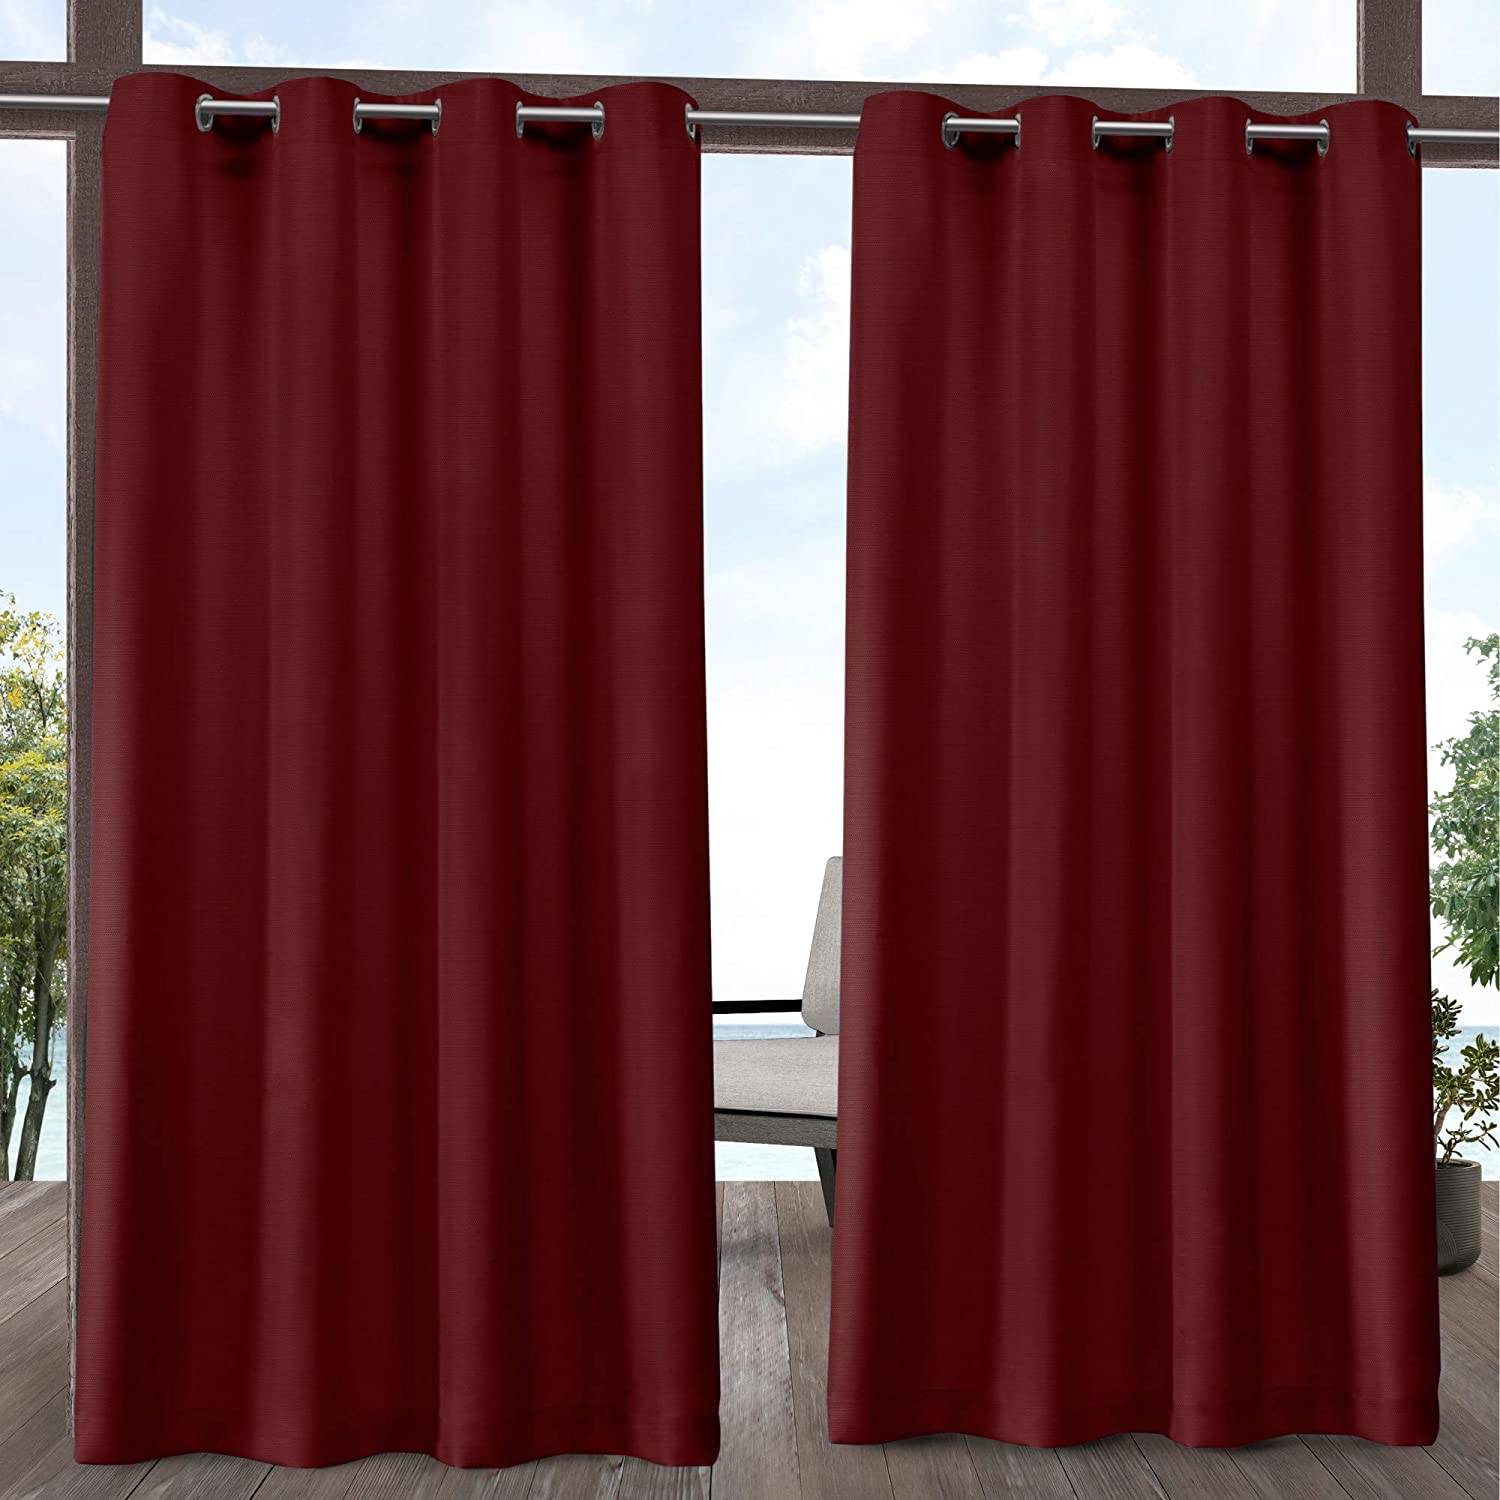 Exclusive Home Curtains Delano Heavyweight Textured Indoor/Outdoor Grommet Top Curtain Panel Pair, 54x84, Radiant Red